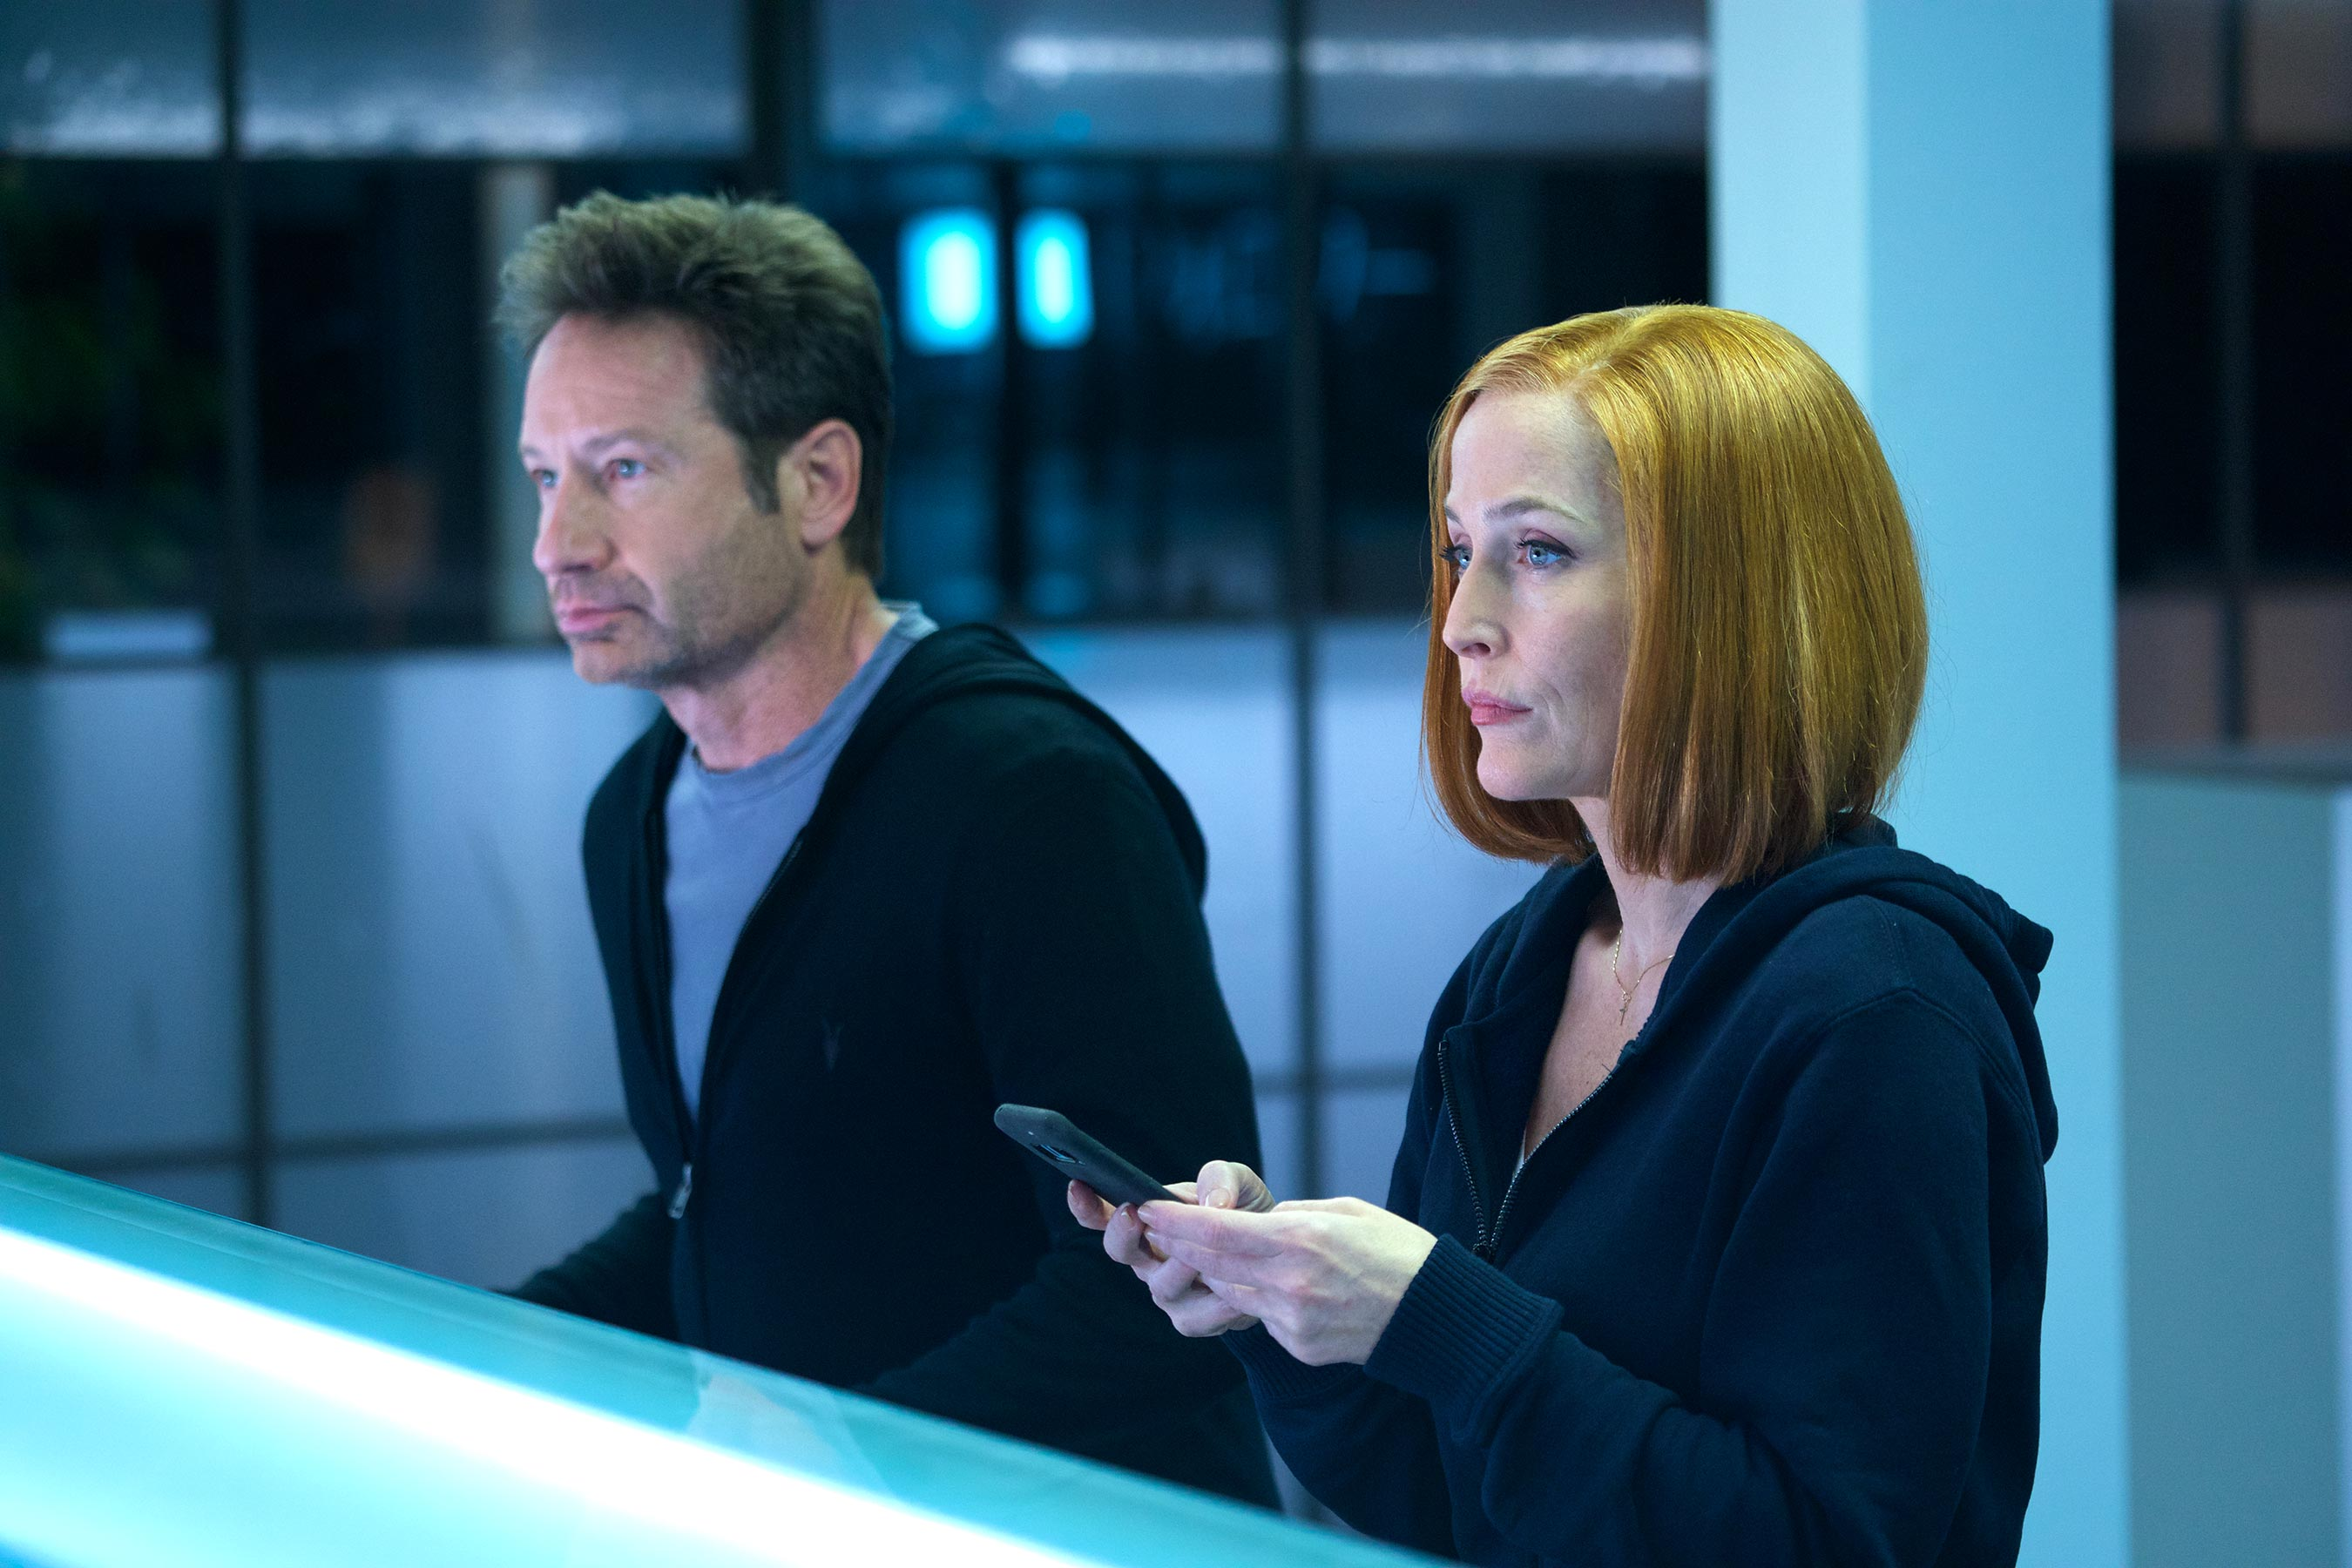 'X-Files' review: 'Rm9sbG93ZXJz' pits Mulder and Scully against modern technology (and modern life)